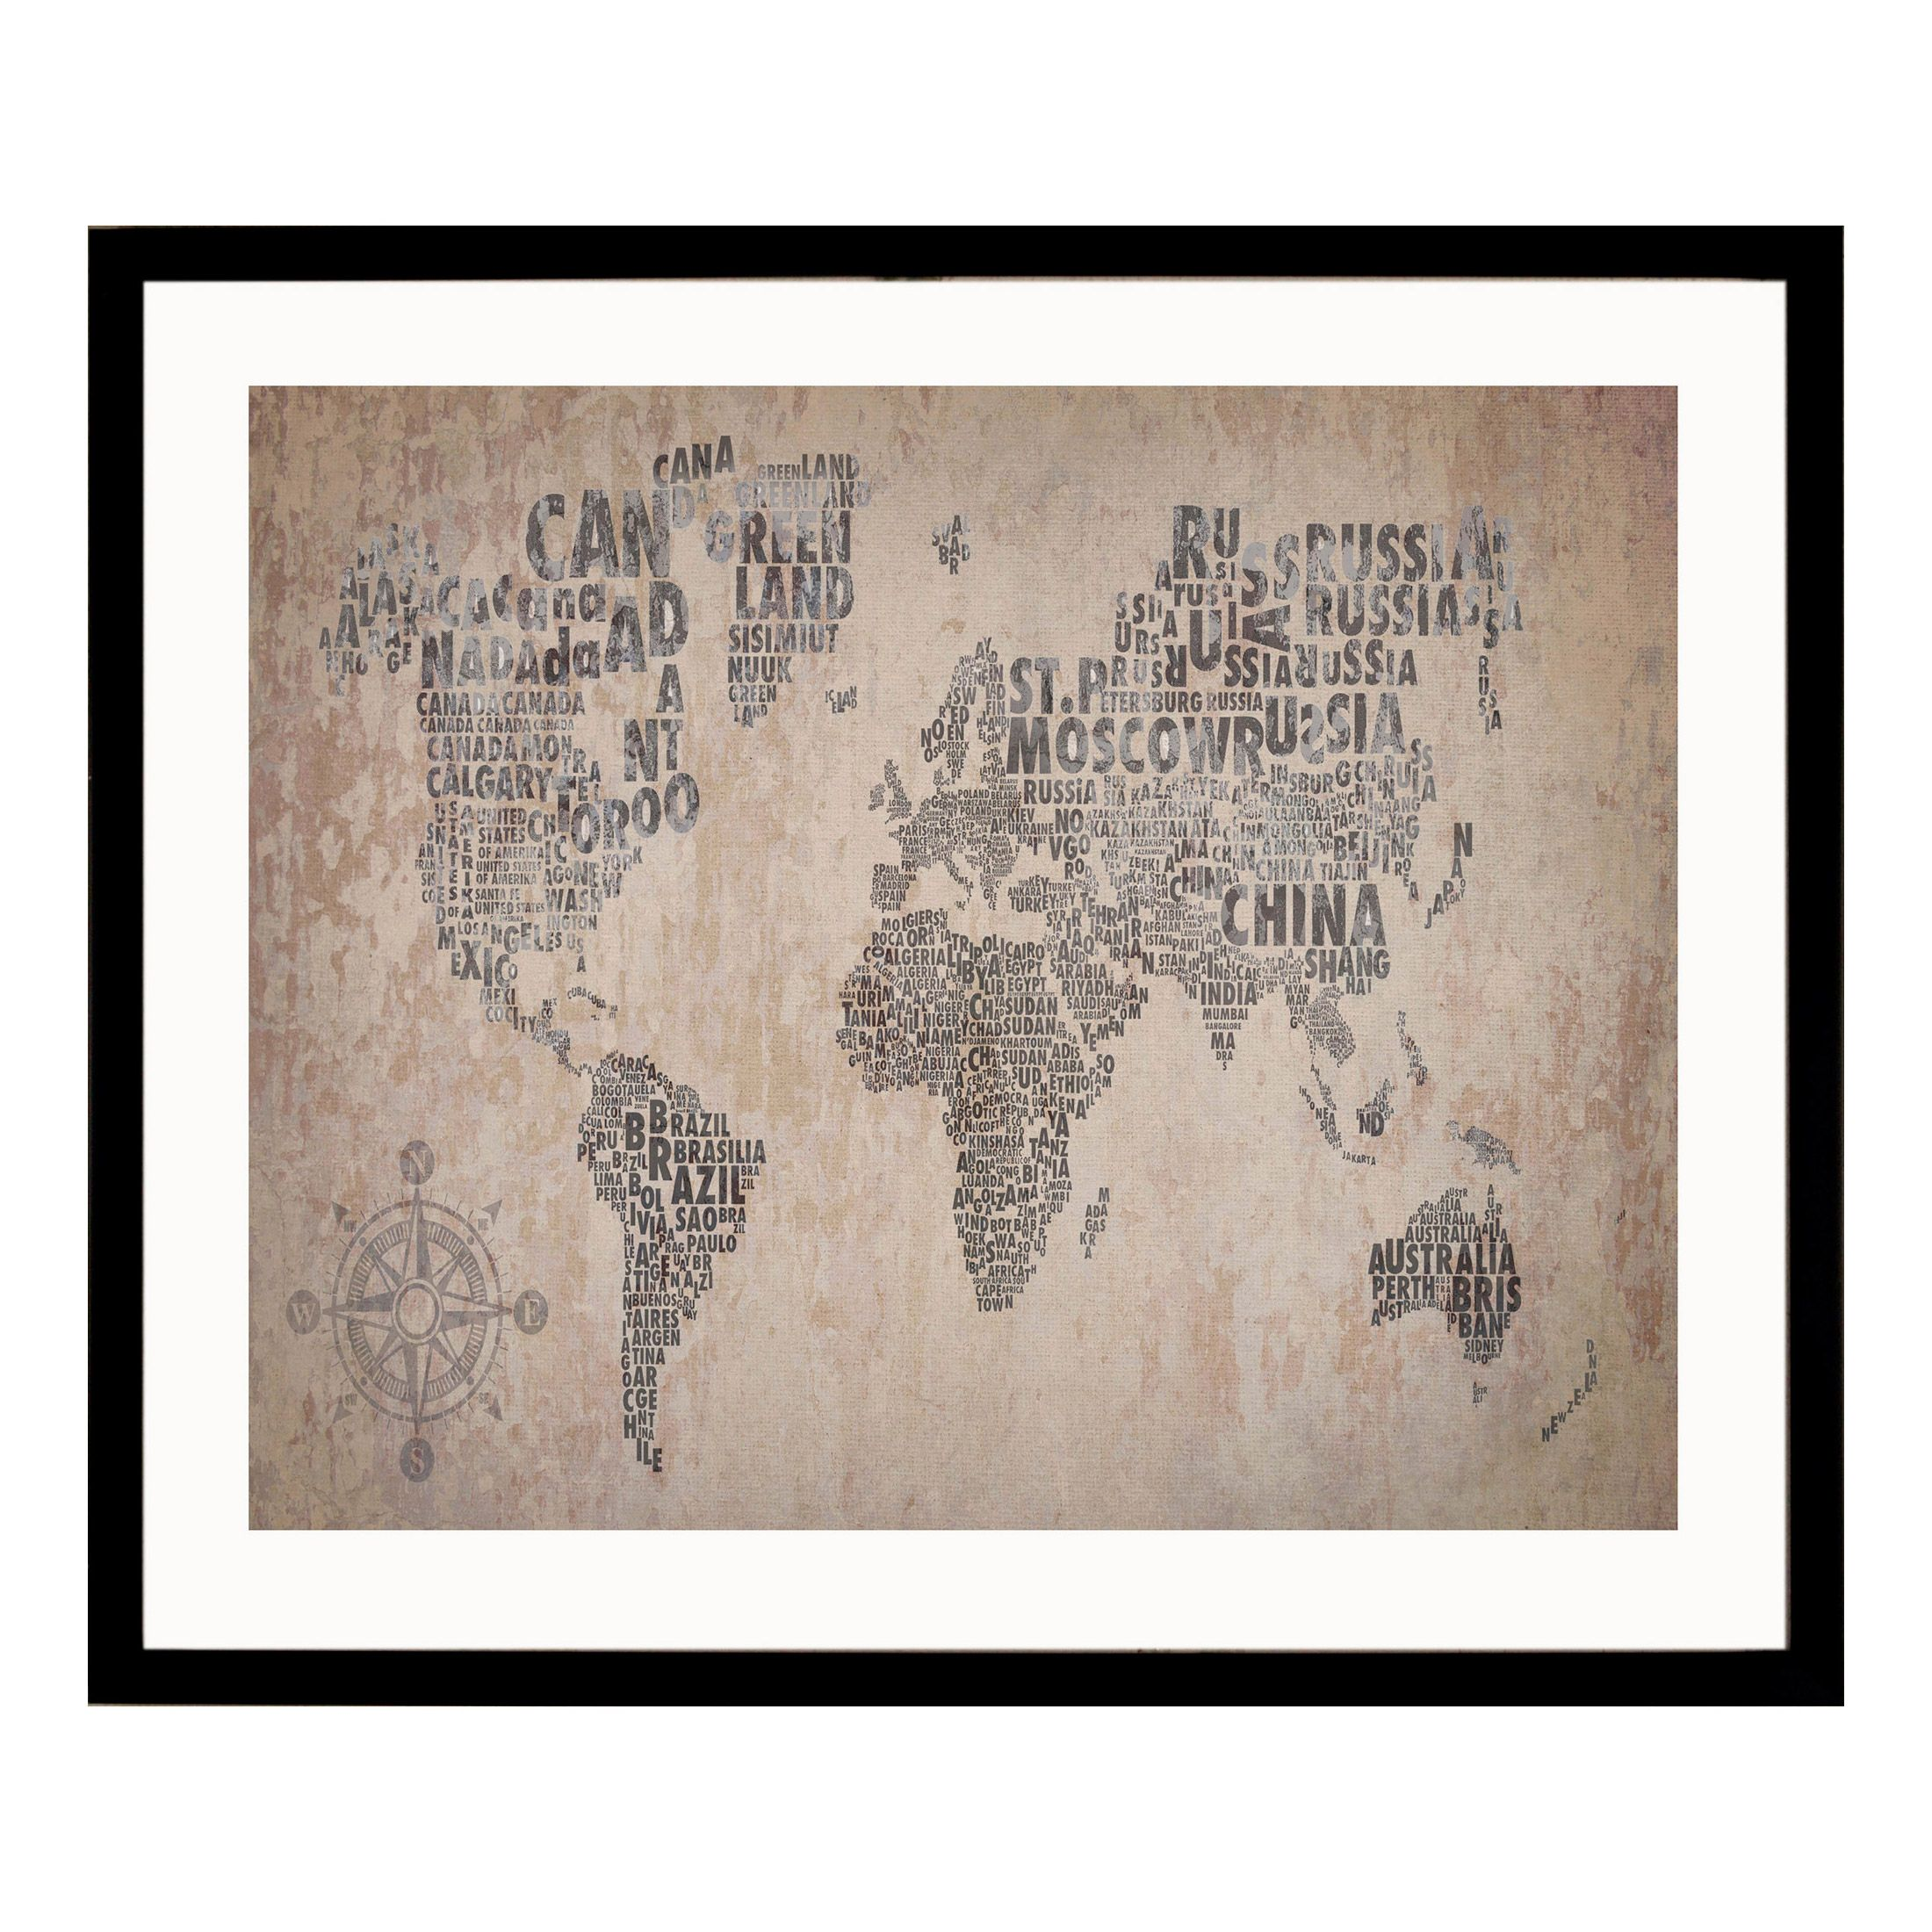 cadre d coratif carte du monde en bois mdf et verre 40x50cm world g c interiors deco. Black Bedroom Furniture Sets. Home Design Ideas